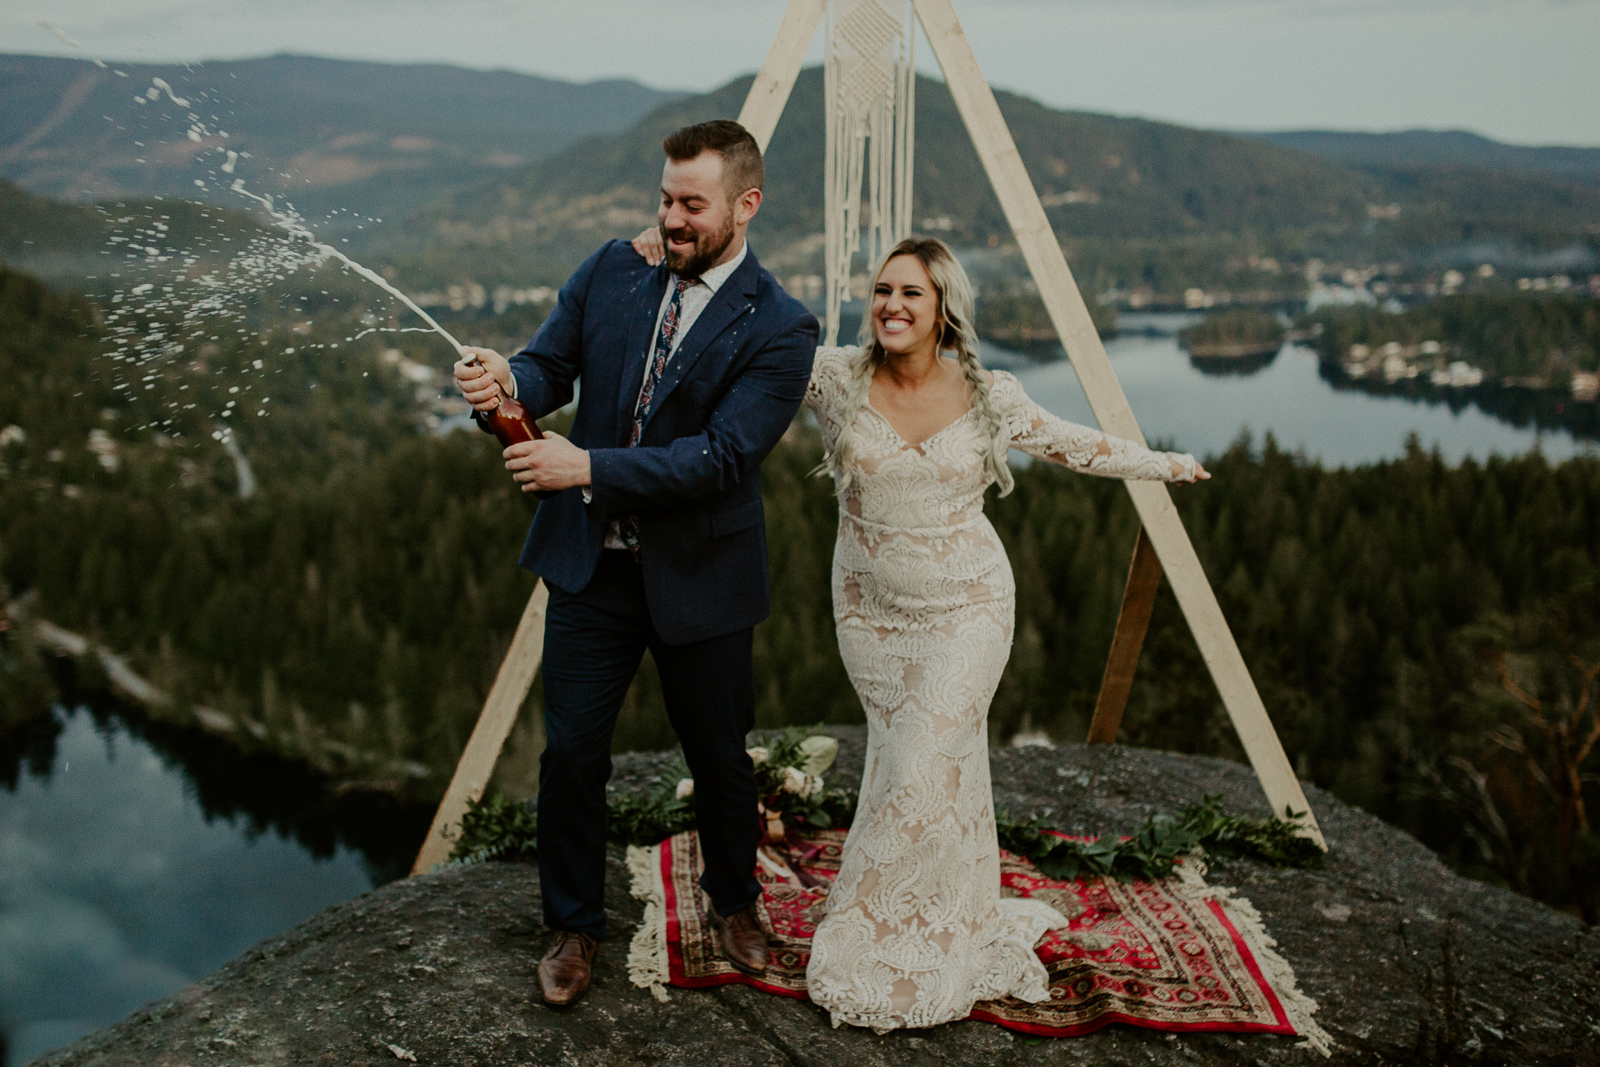 Luke Lambertson Photo_BritishColumbia_Canada_AdventurousCouple_Elopement_IMG-8779.jpg